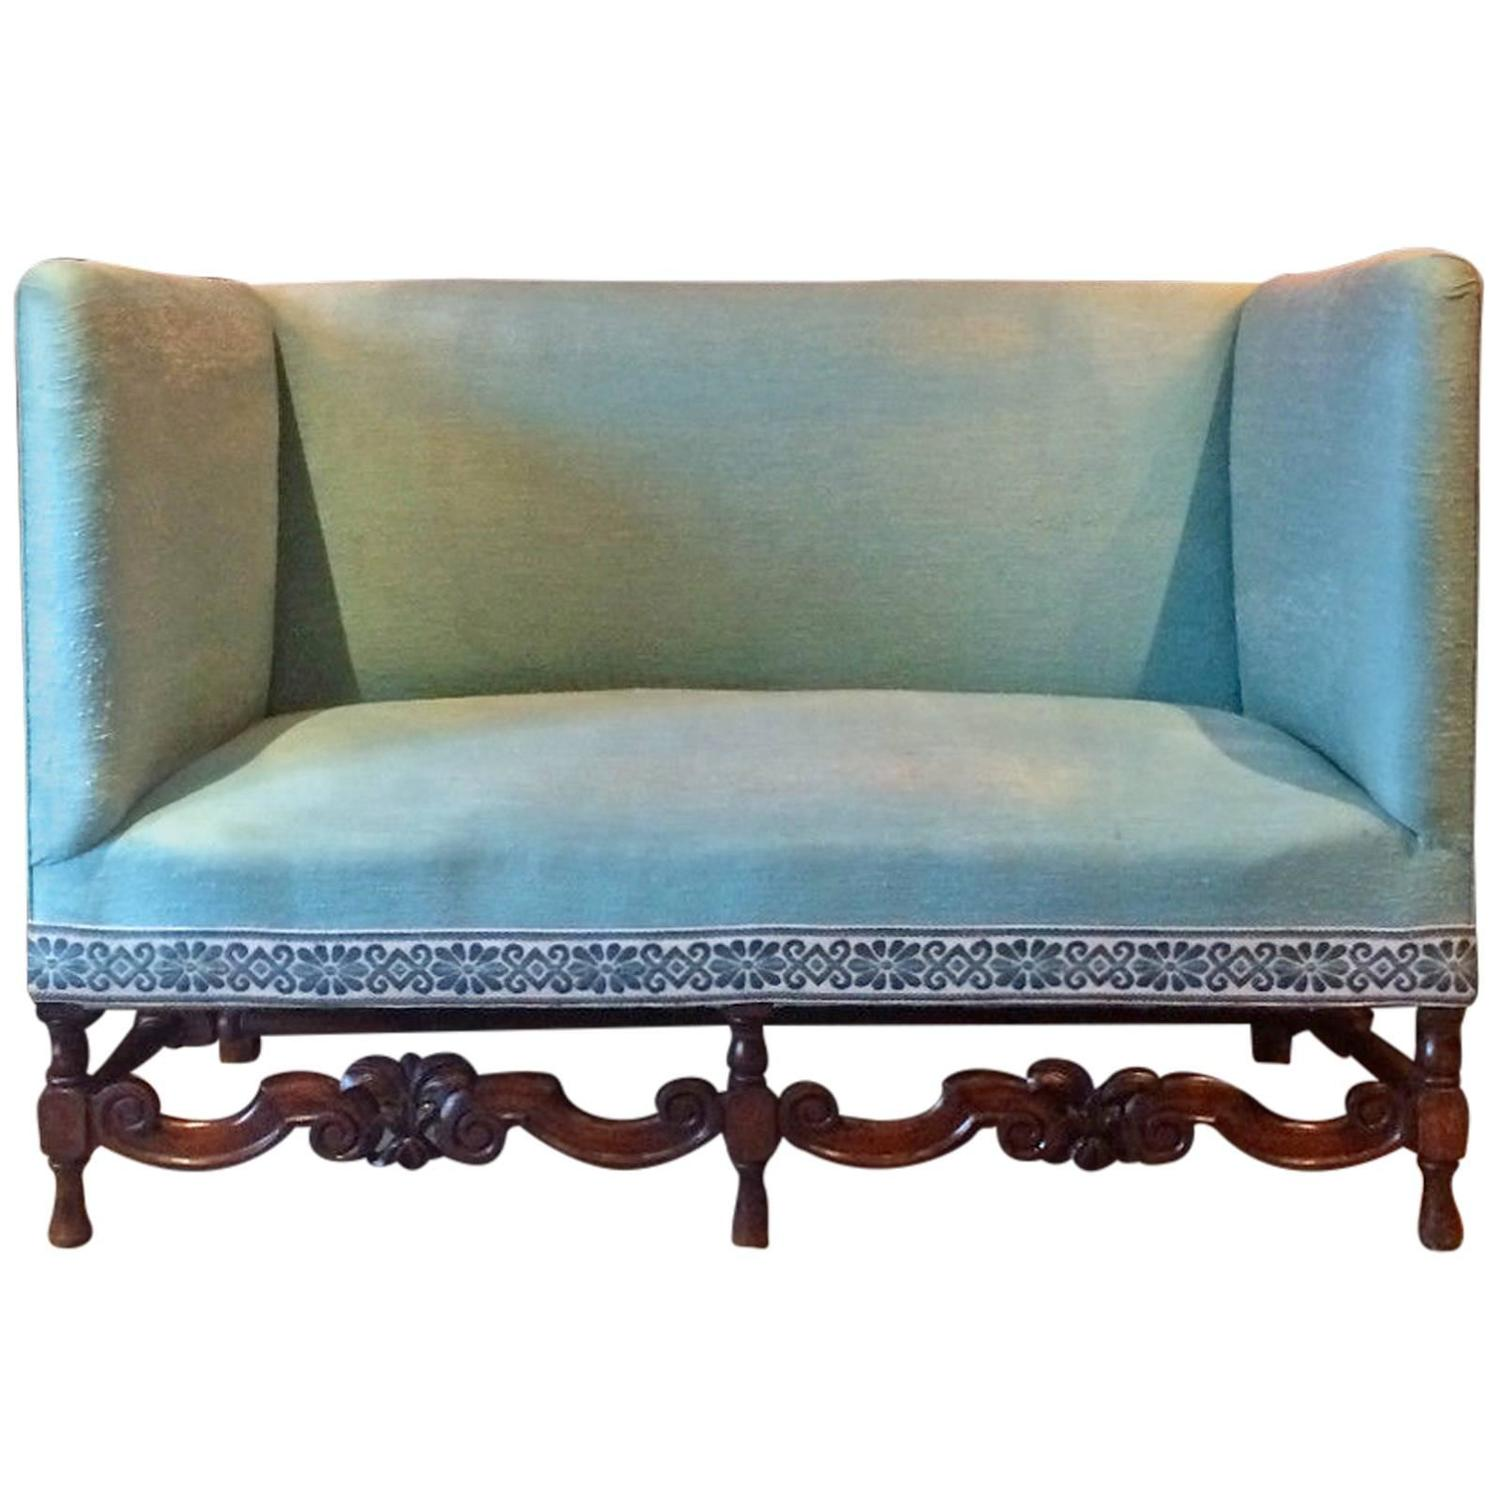 Antique Sofa Shabby Chic Queen Anne Style Victorian High Back